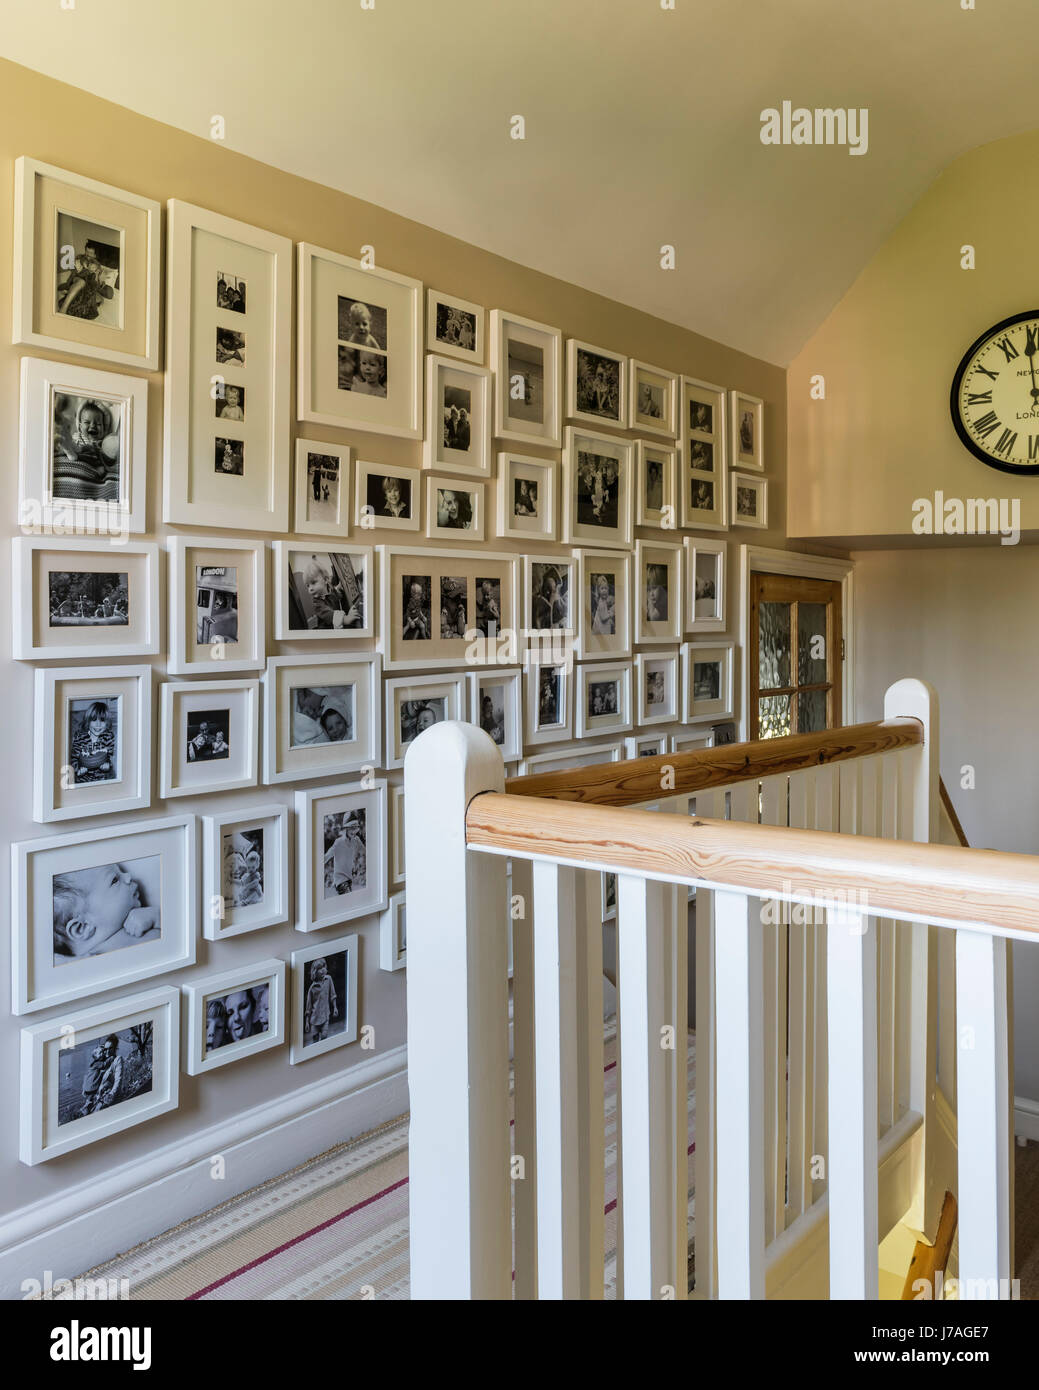 Framed black and white family photography along wall on staircase landing - Stock Image